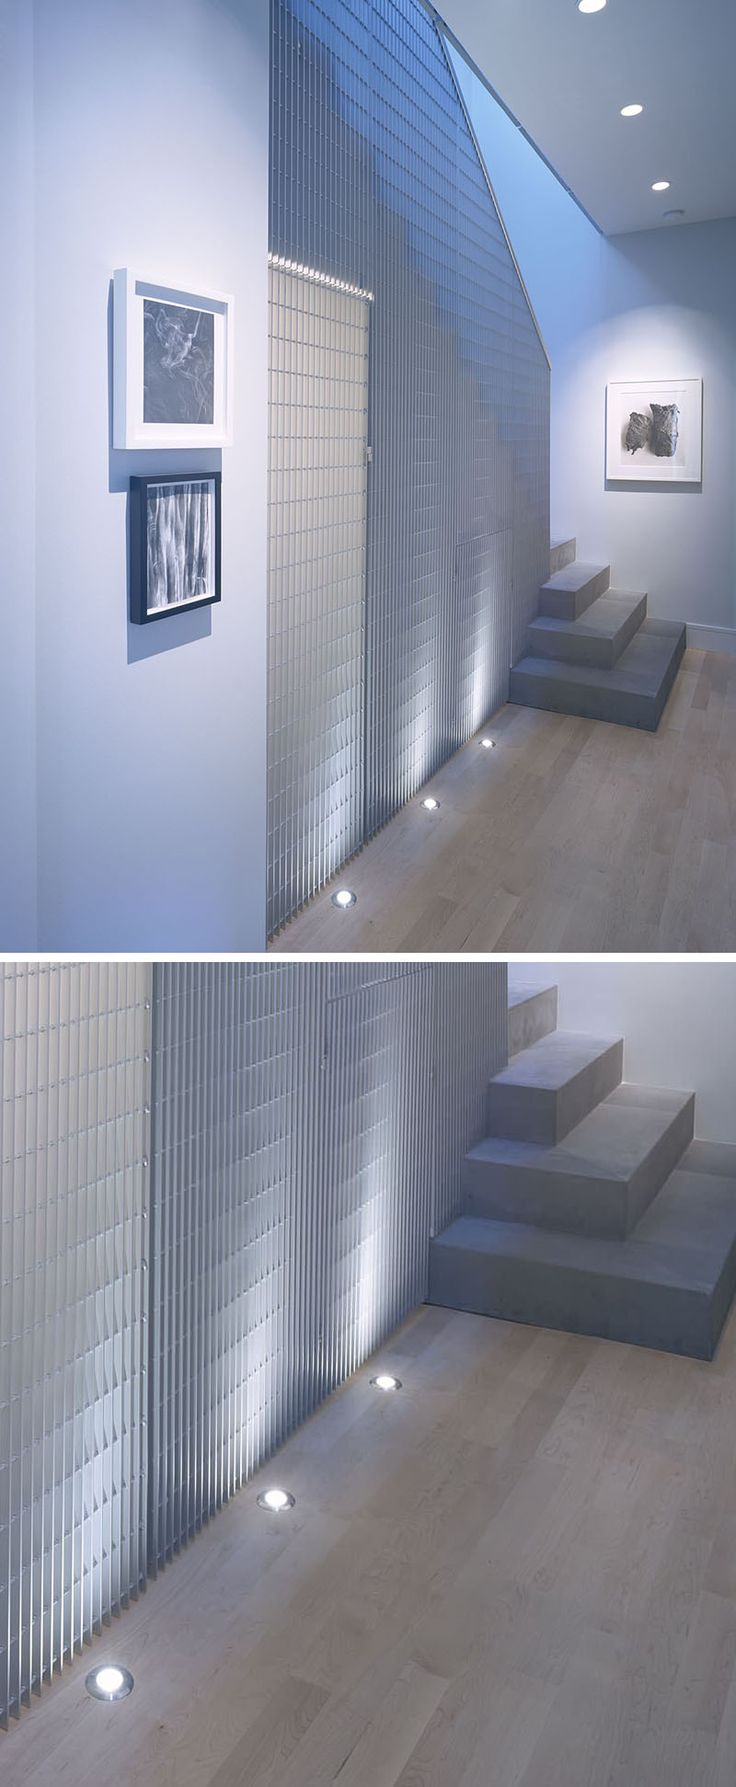 7 Interiors That Use Dramatic Uplighting To Brighten A Space // The lights…